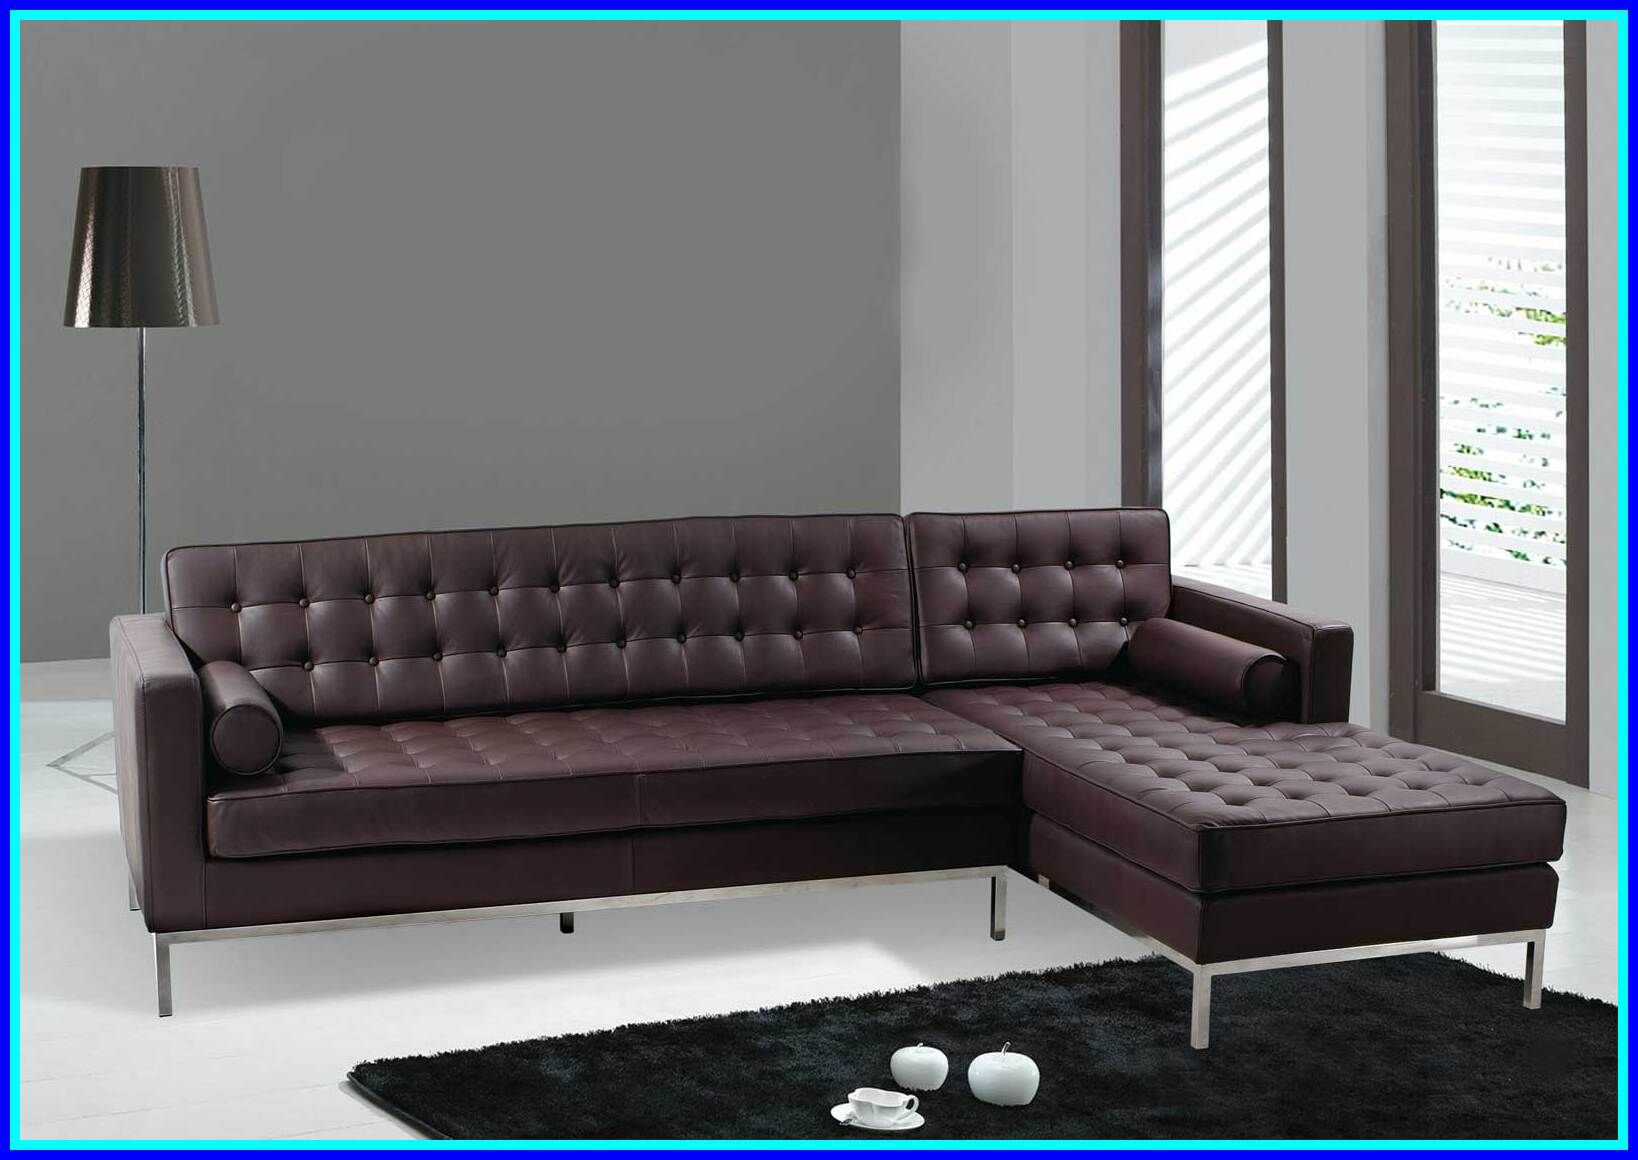 63 Reference Of Couch Modern Office In 2020 Contemporary Leather Sofa Modern Sofa Sectional Modern Leather Sofa